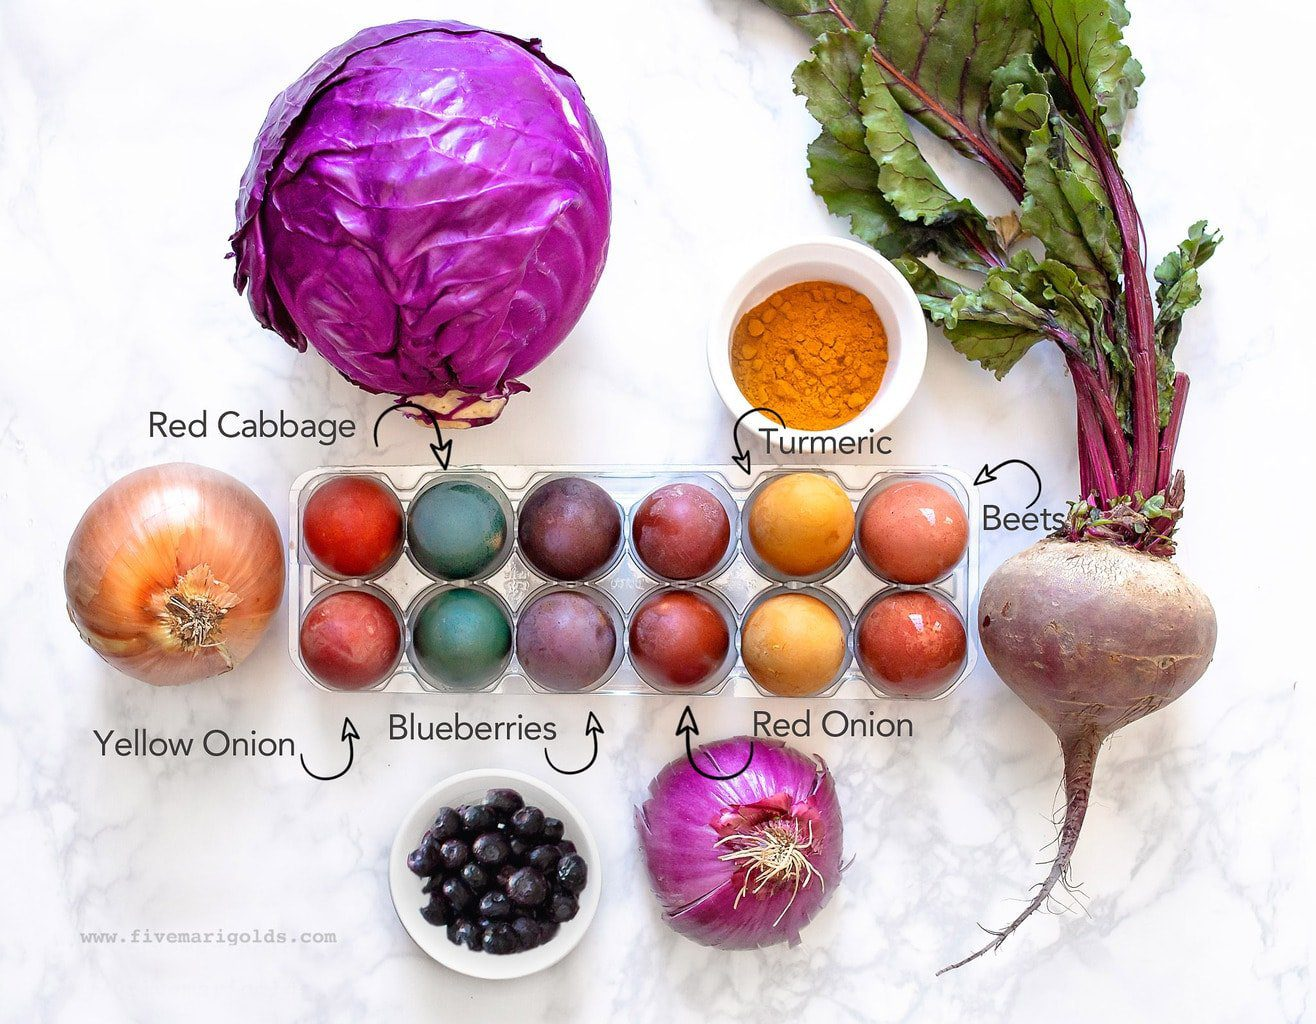 Naturally dye brown easter eggs with red cabbage, beets, red onions, yellow onions, turmeric, and blueberries